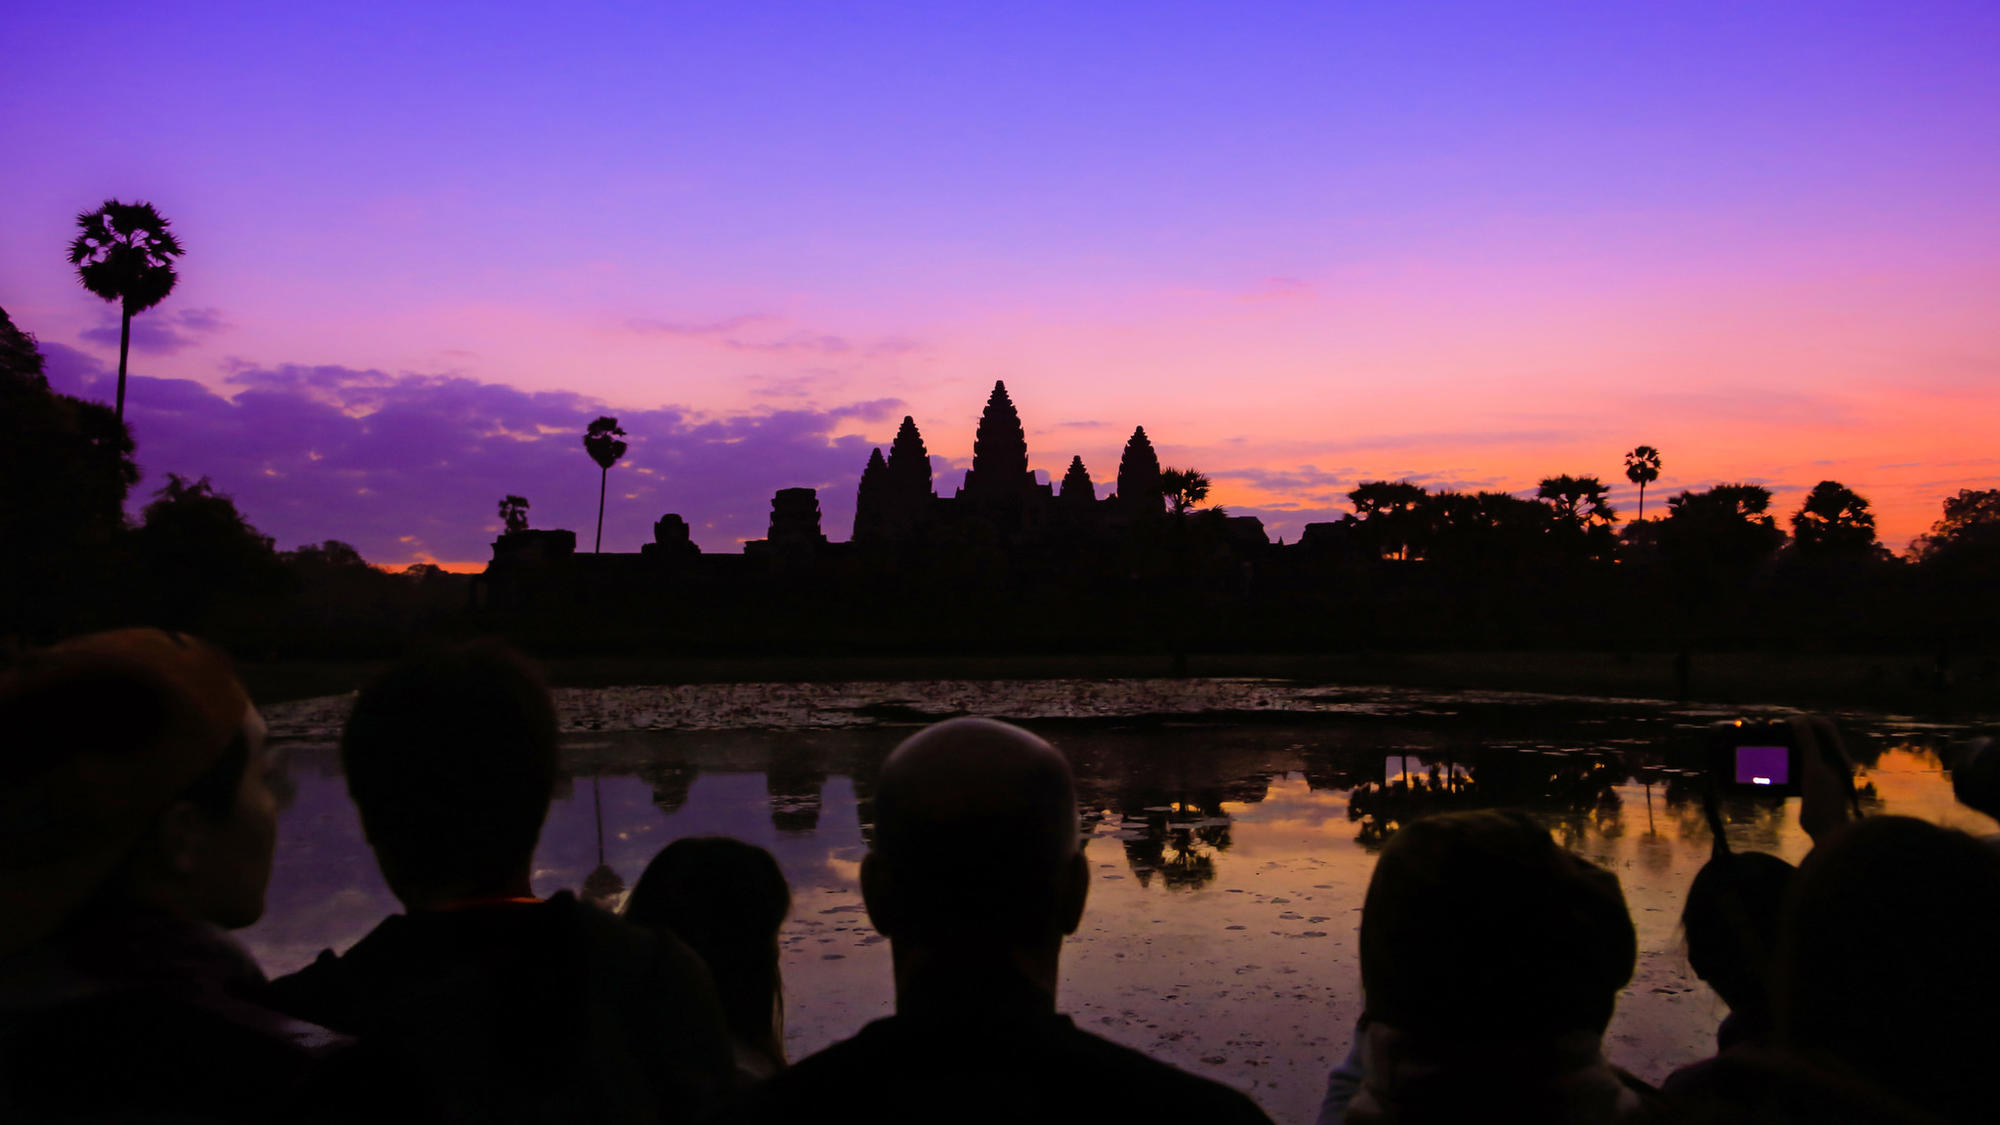 The temples of Angkor Wat in Siem Reap, Cambodia.